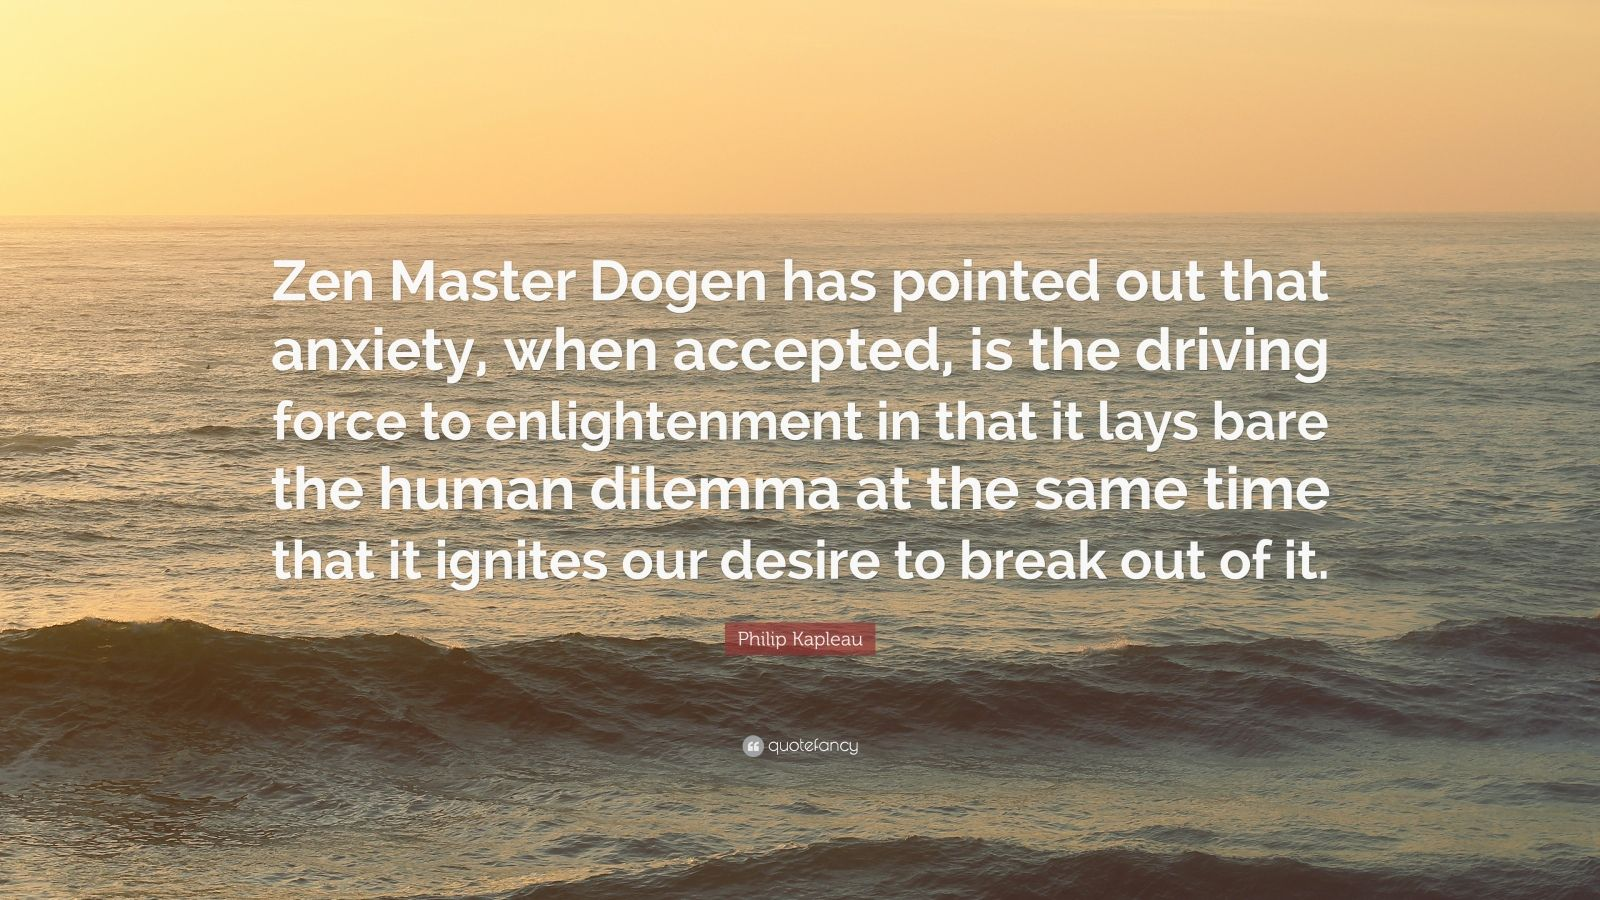 philosophical biography on zen master dogen essay Dogen profoundly expressed the essence of zen in his biography it is said that dogen had great doubts about without considering this great zen master changes in buddhist philosophy to the masses in dogen's view it is precisely because we are now in the period of.